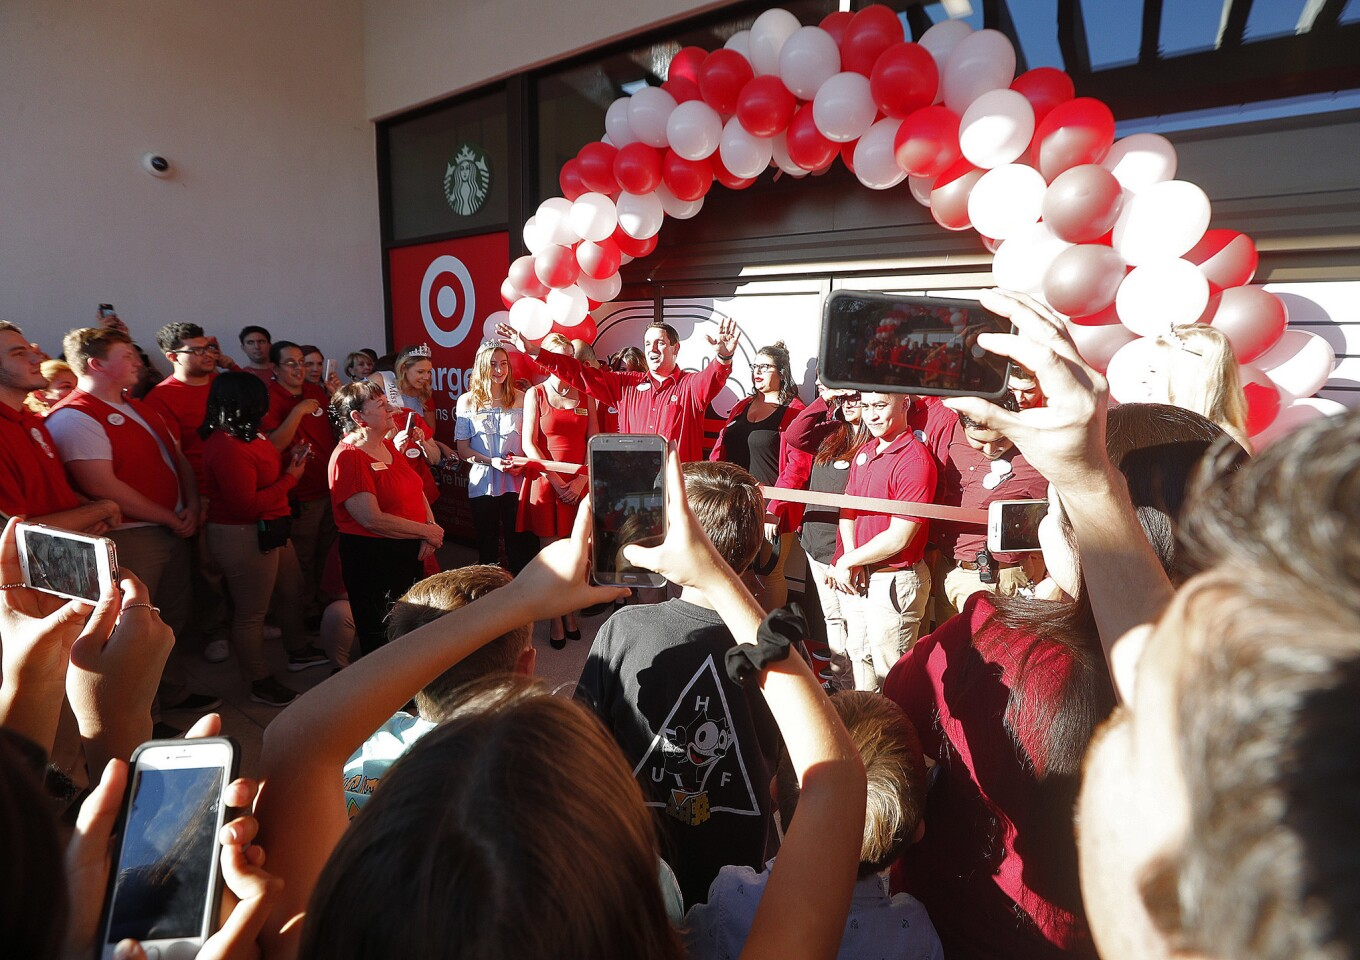 Photo Gallery: Target sneak peek grand opening in La Canada in former Sport Chalet building